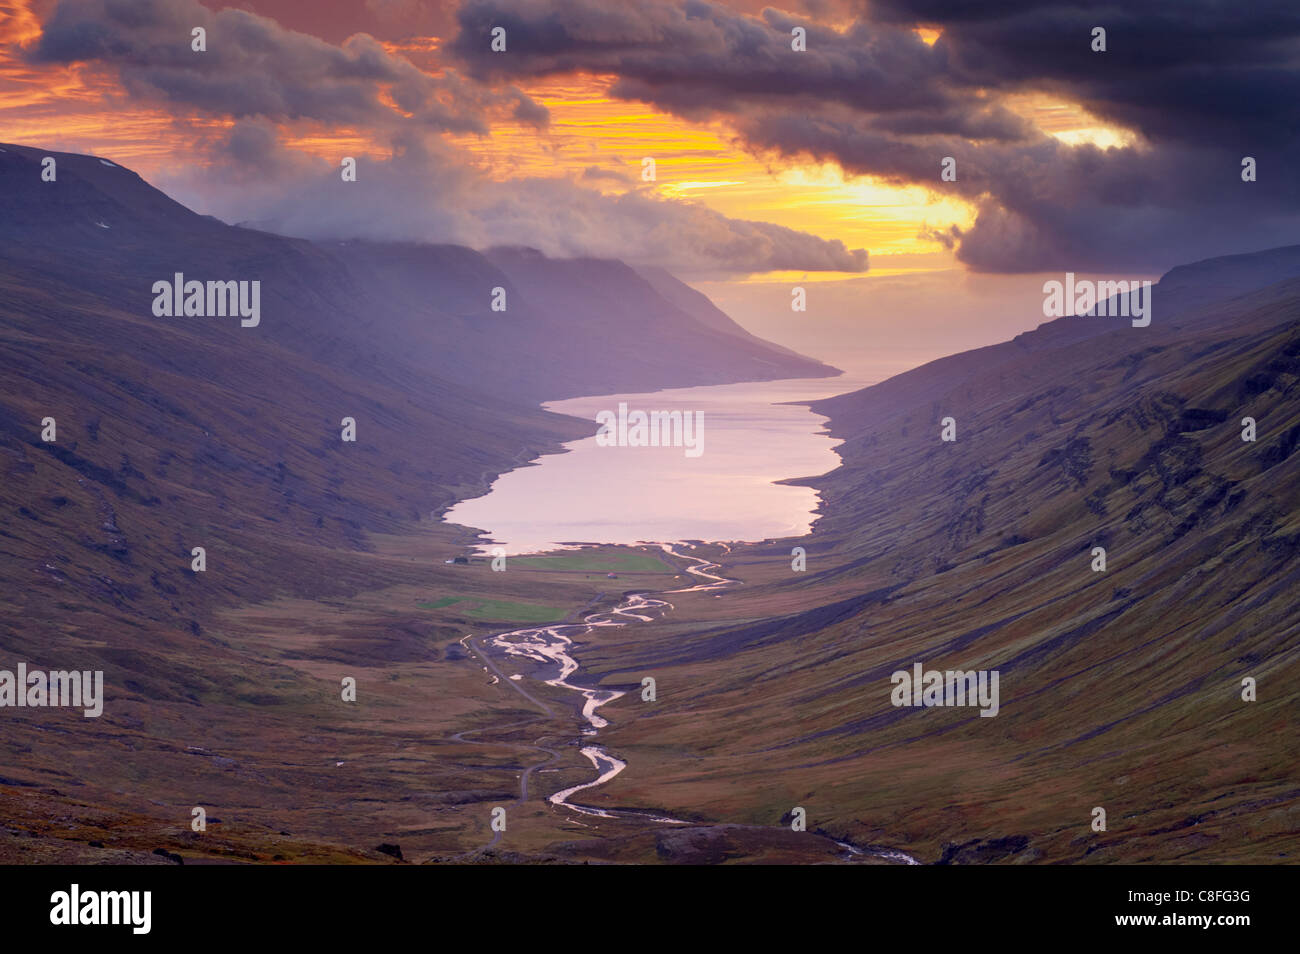 Sunset over Fjardardalur valley and Mjoifjordur fjord, East Fjords region (Austurland, Iceland, Polar Regions - Stock Image